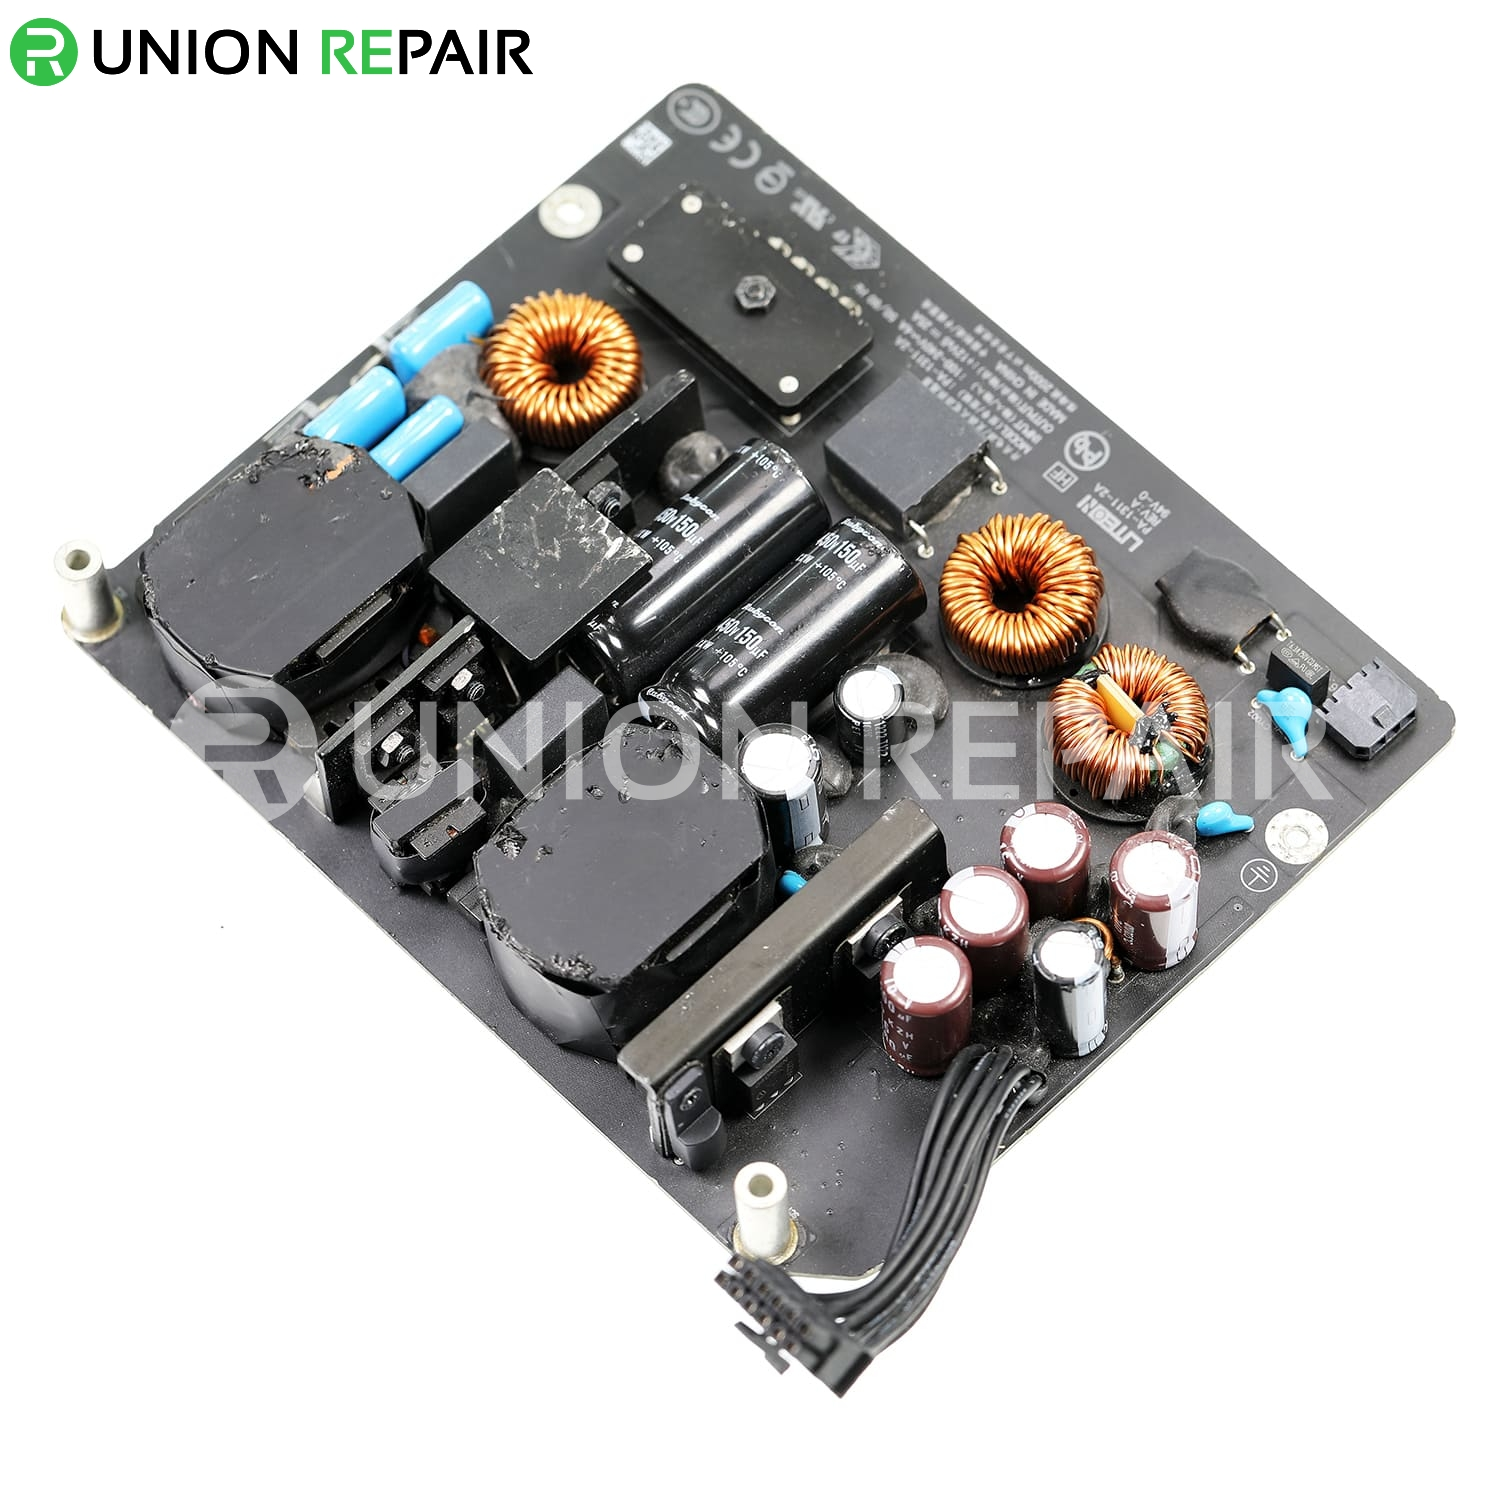 """Power Supply (300W) for iMac 27"""" A1419 (Late 2012)"""